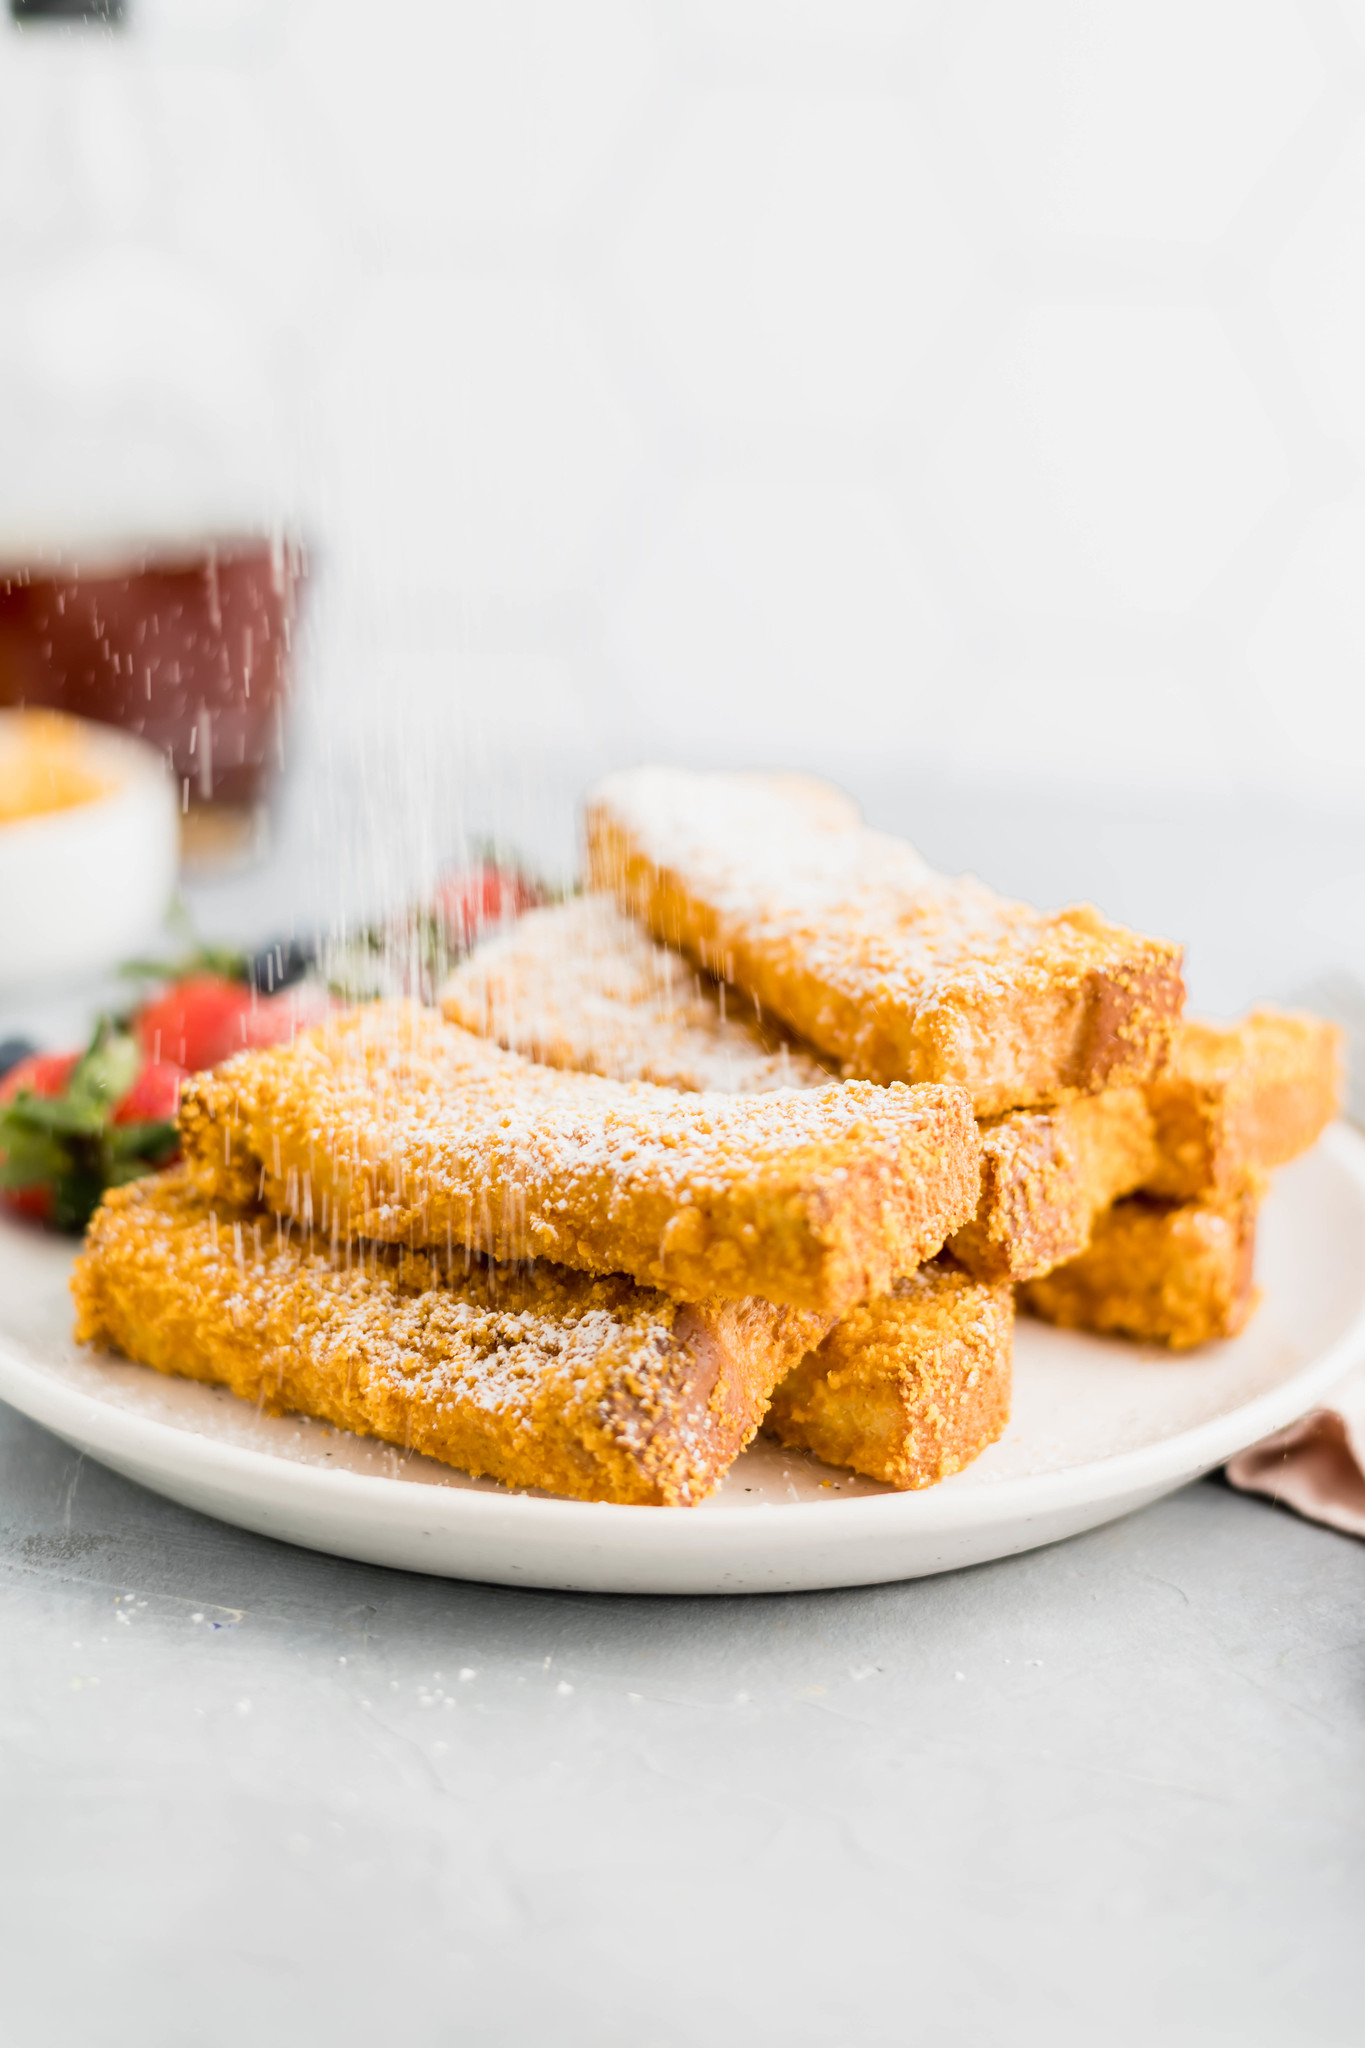 These Crunchy French Toast Sticks are sure to become a family favorite. Thick cut bread cut into sticks and coated in your favorite cereal crumbs.